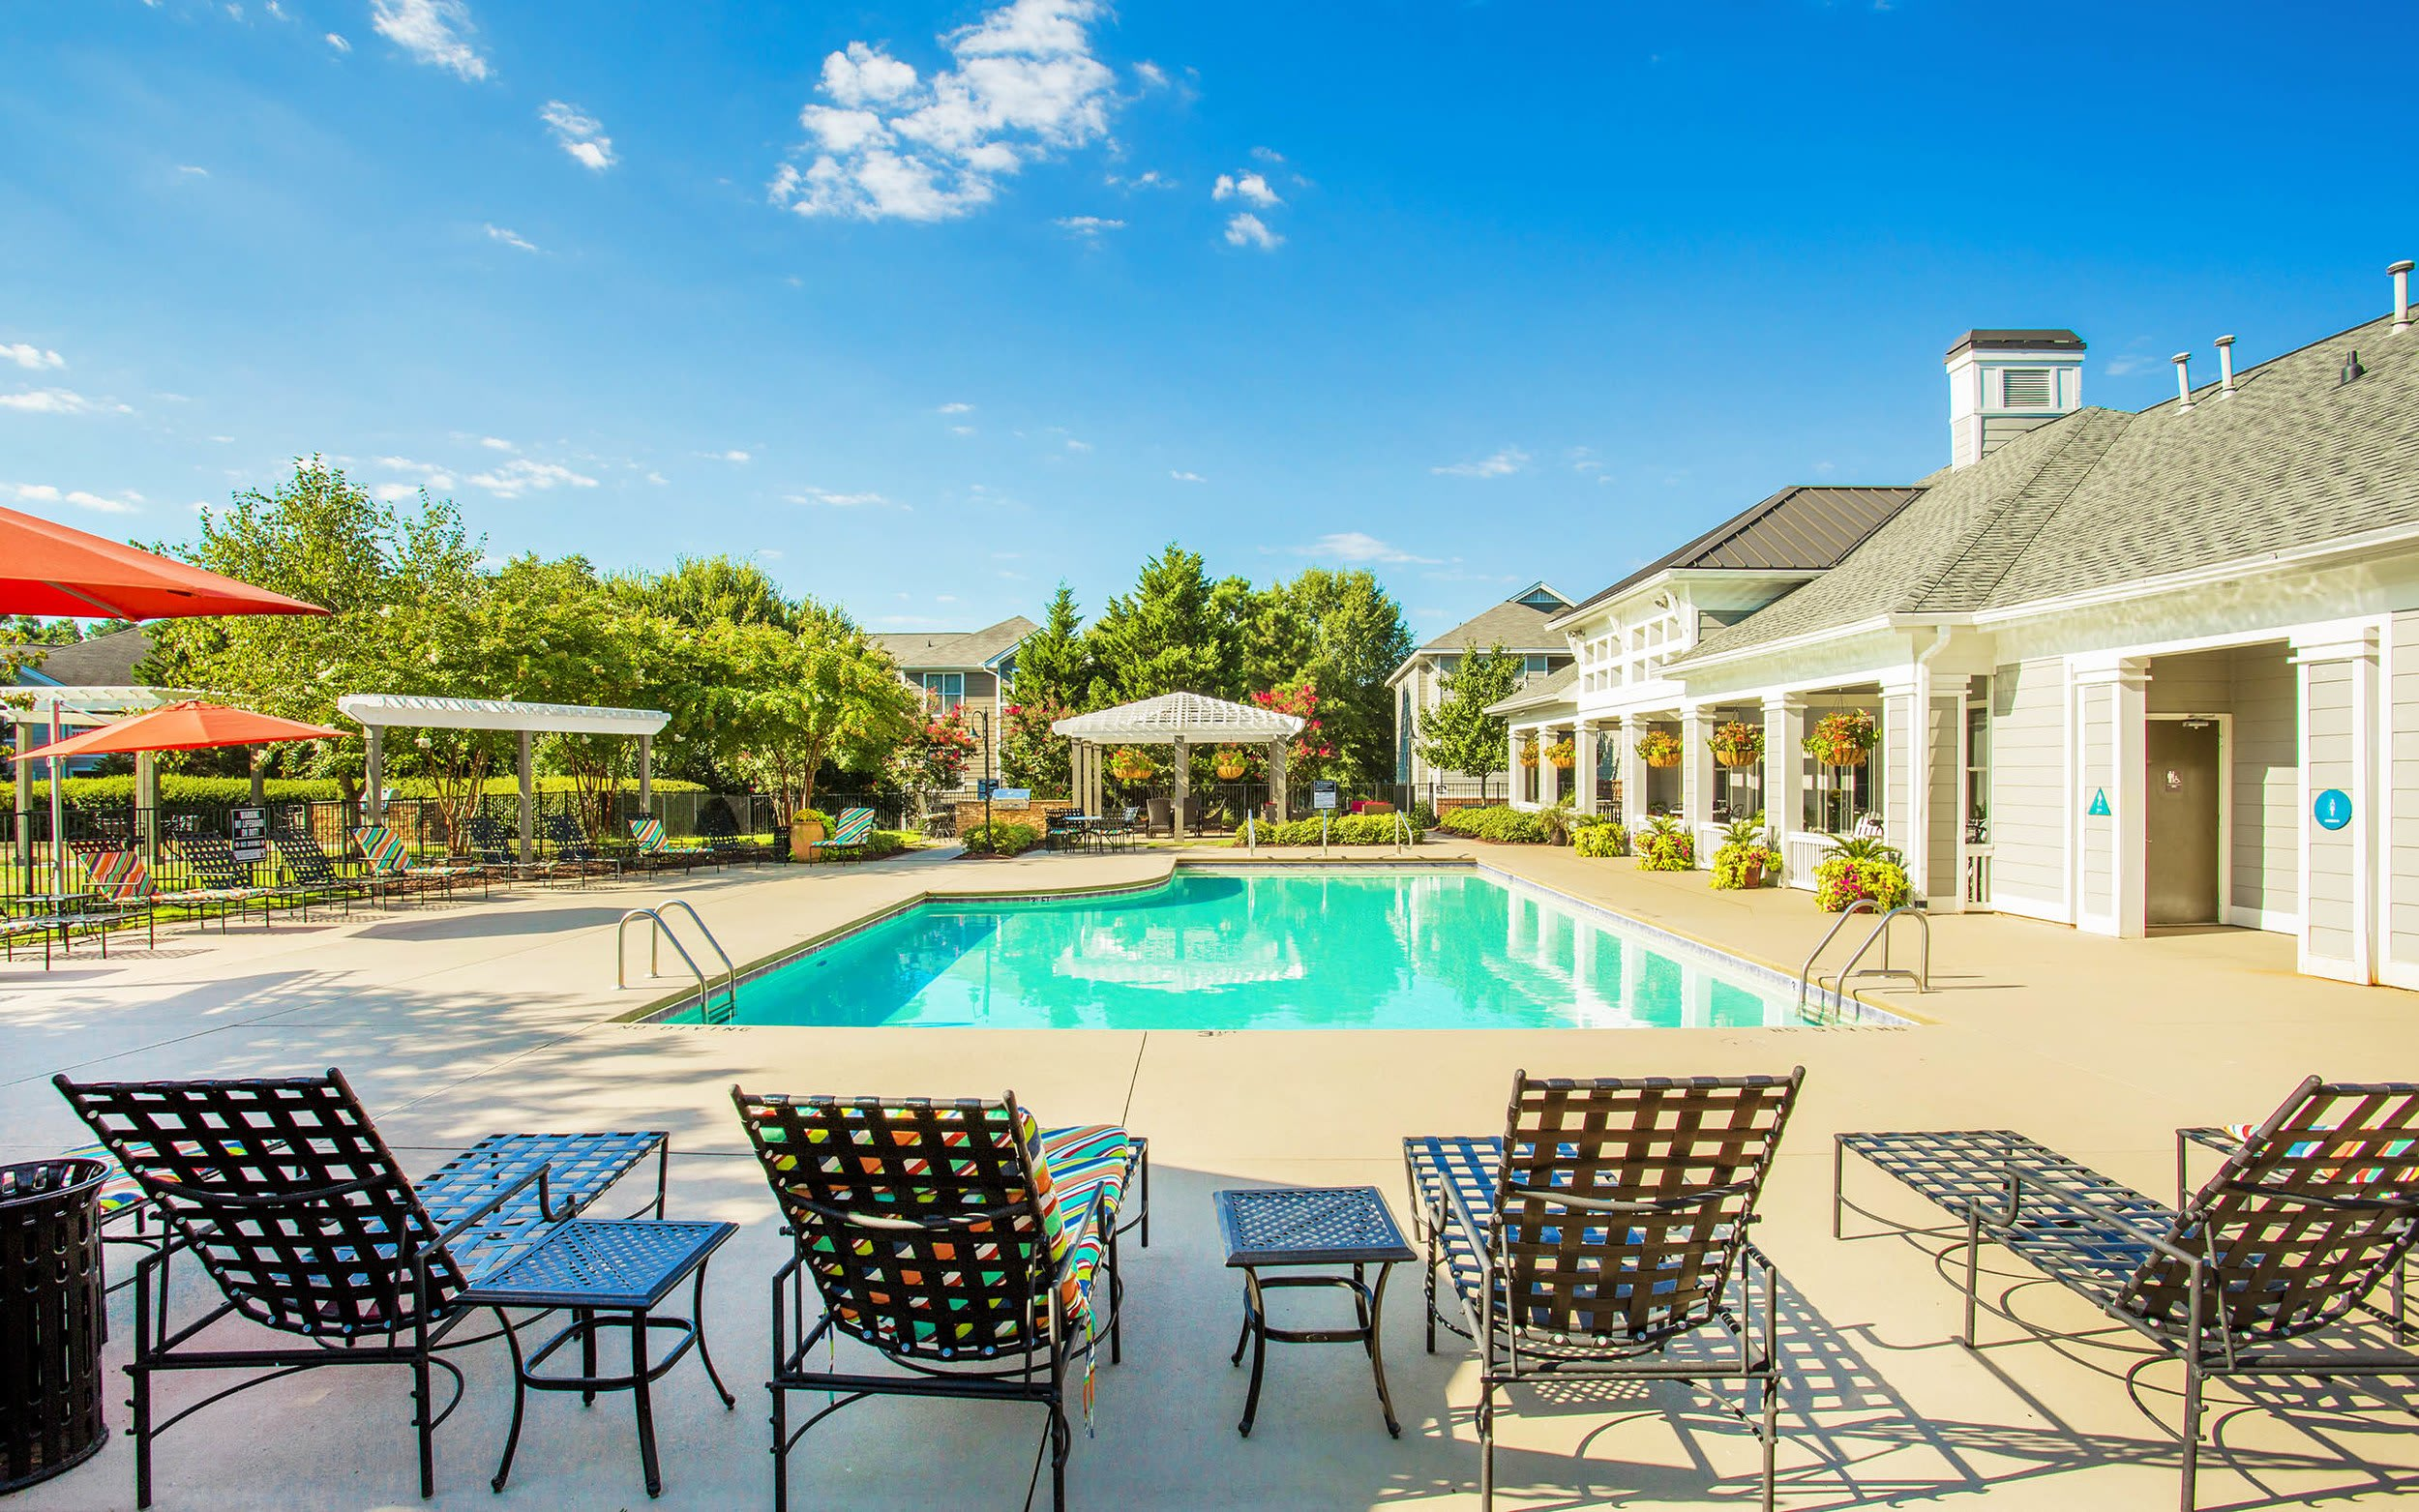 Swimming Pool and Lounge area at The Seasons at Umstead in Raleigh, North Carolina